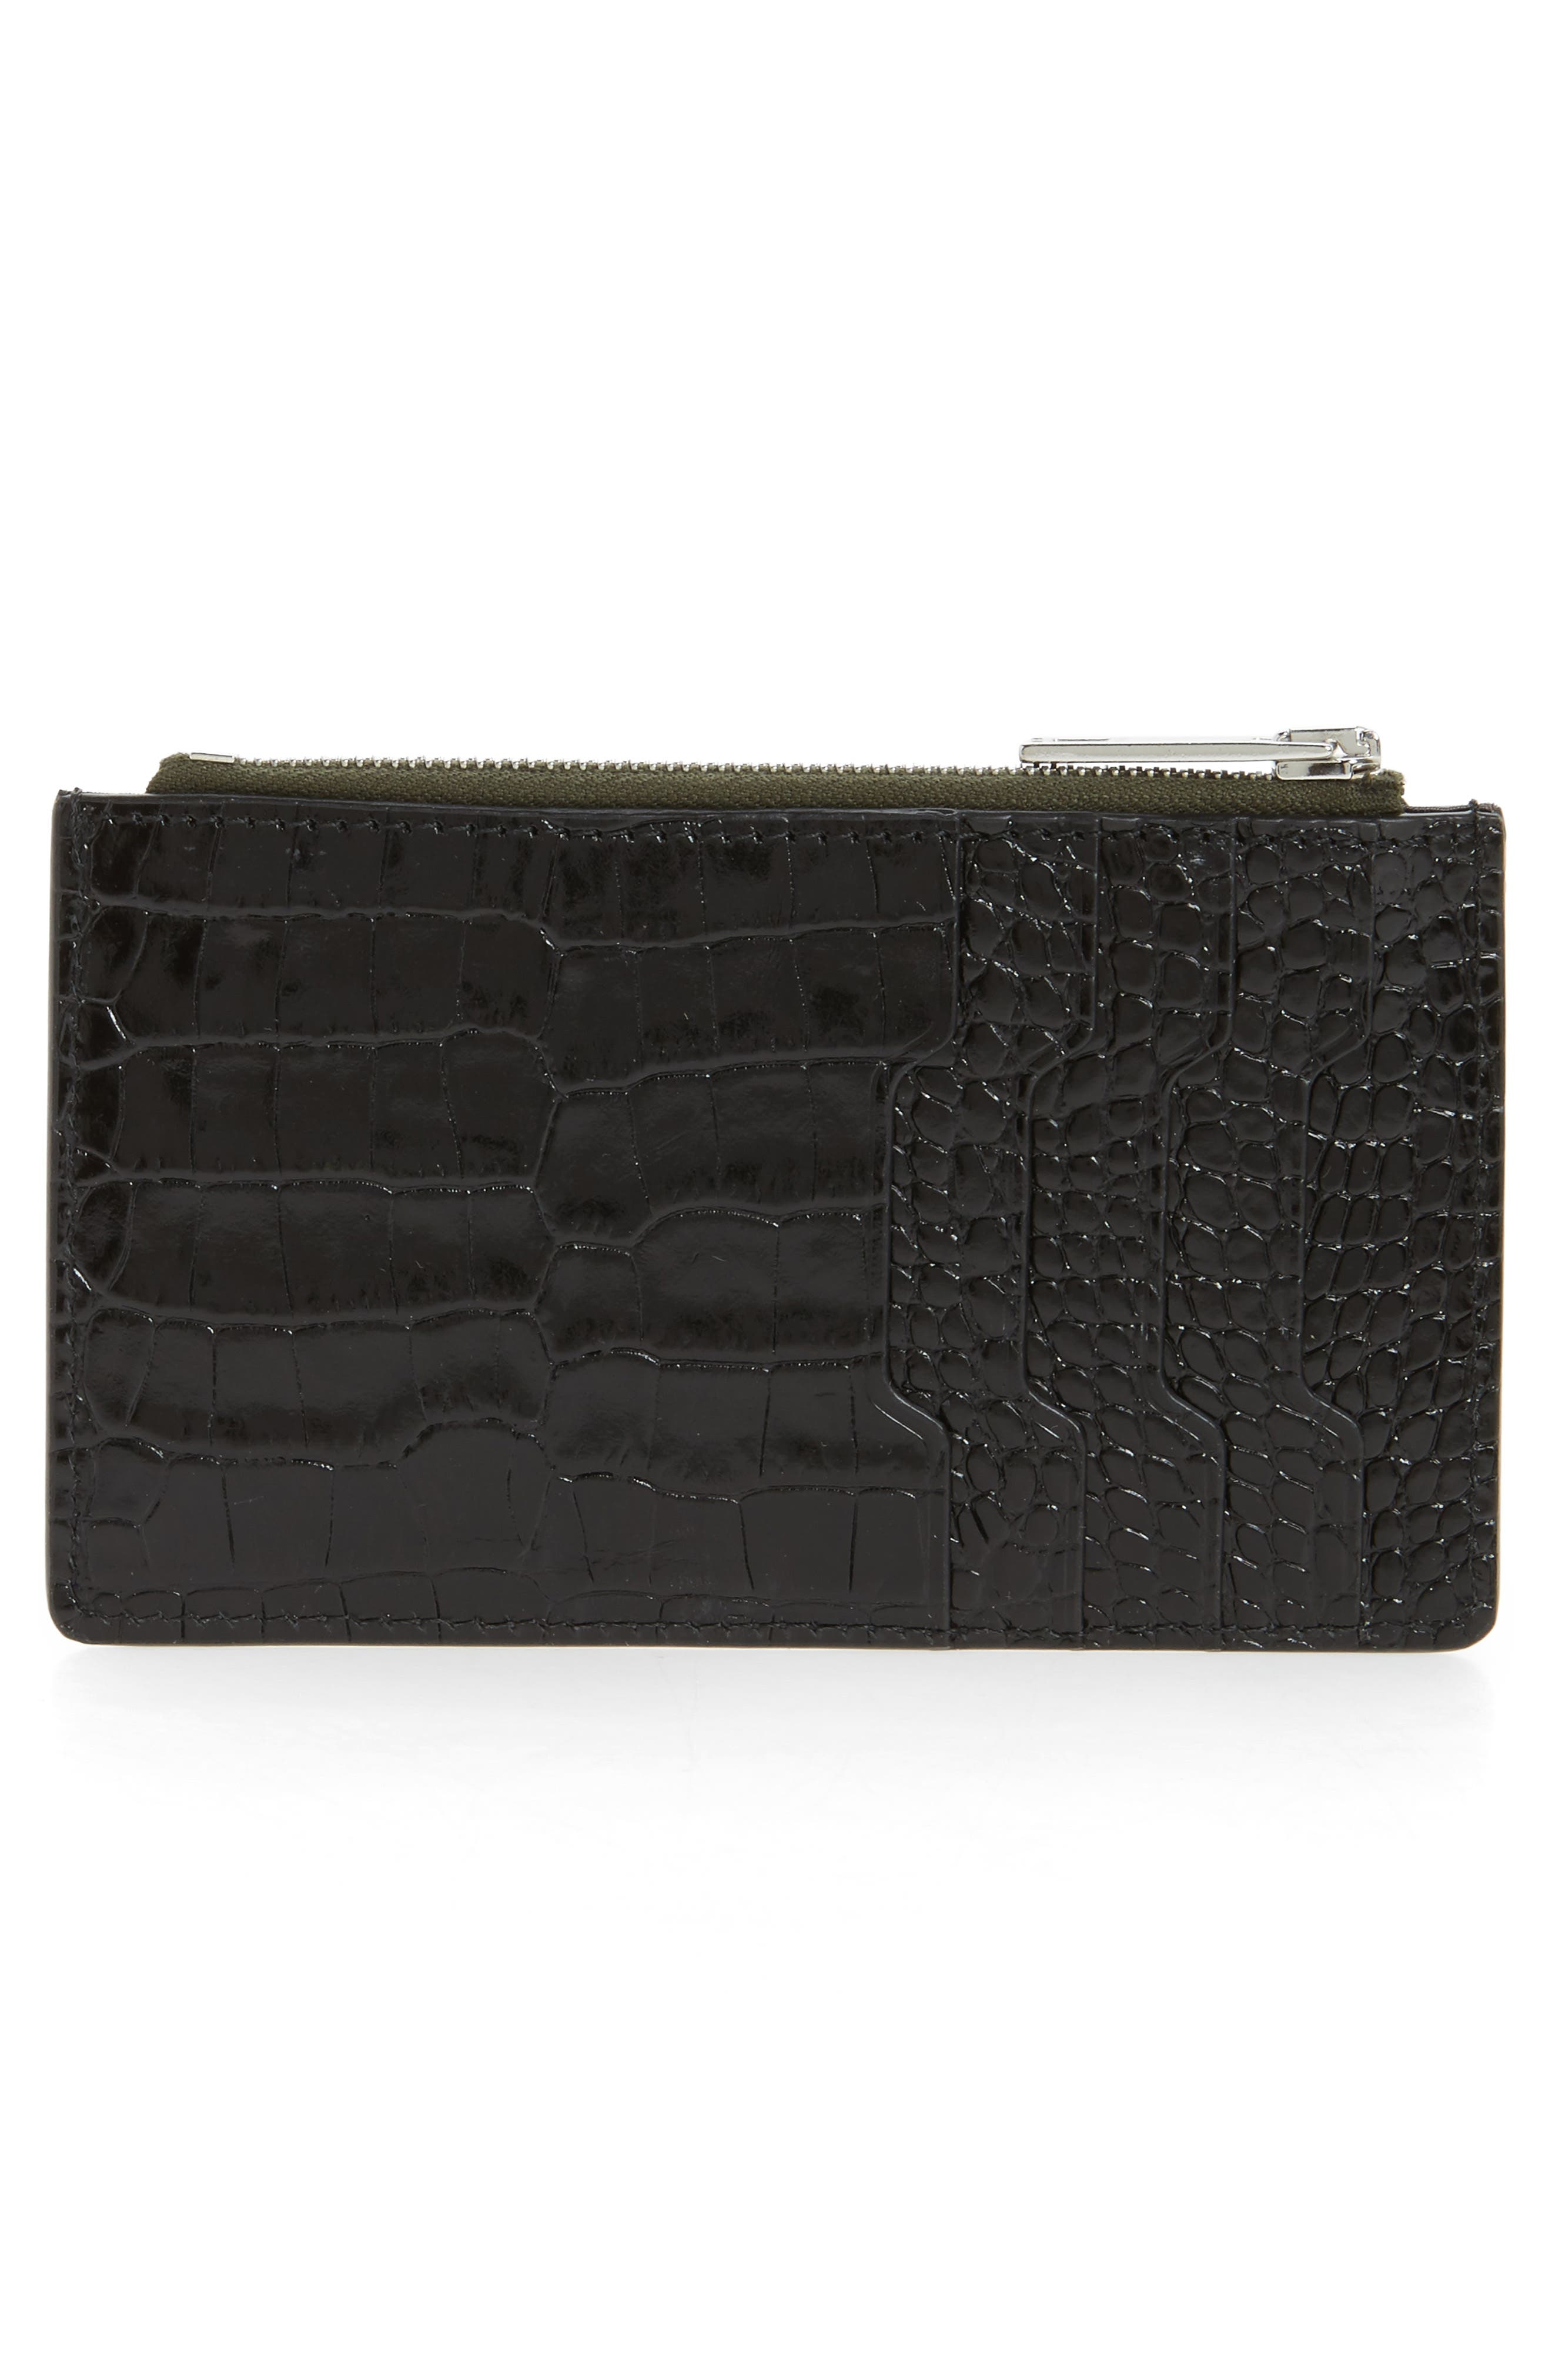 Croc Embossed Leather Zip Card Case,                             Alternate thumbnail 3, color,                             001